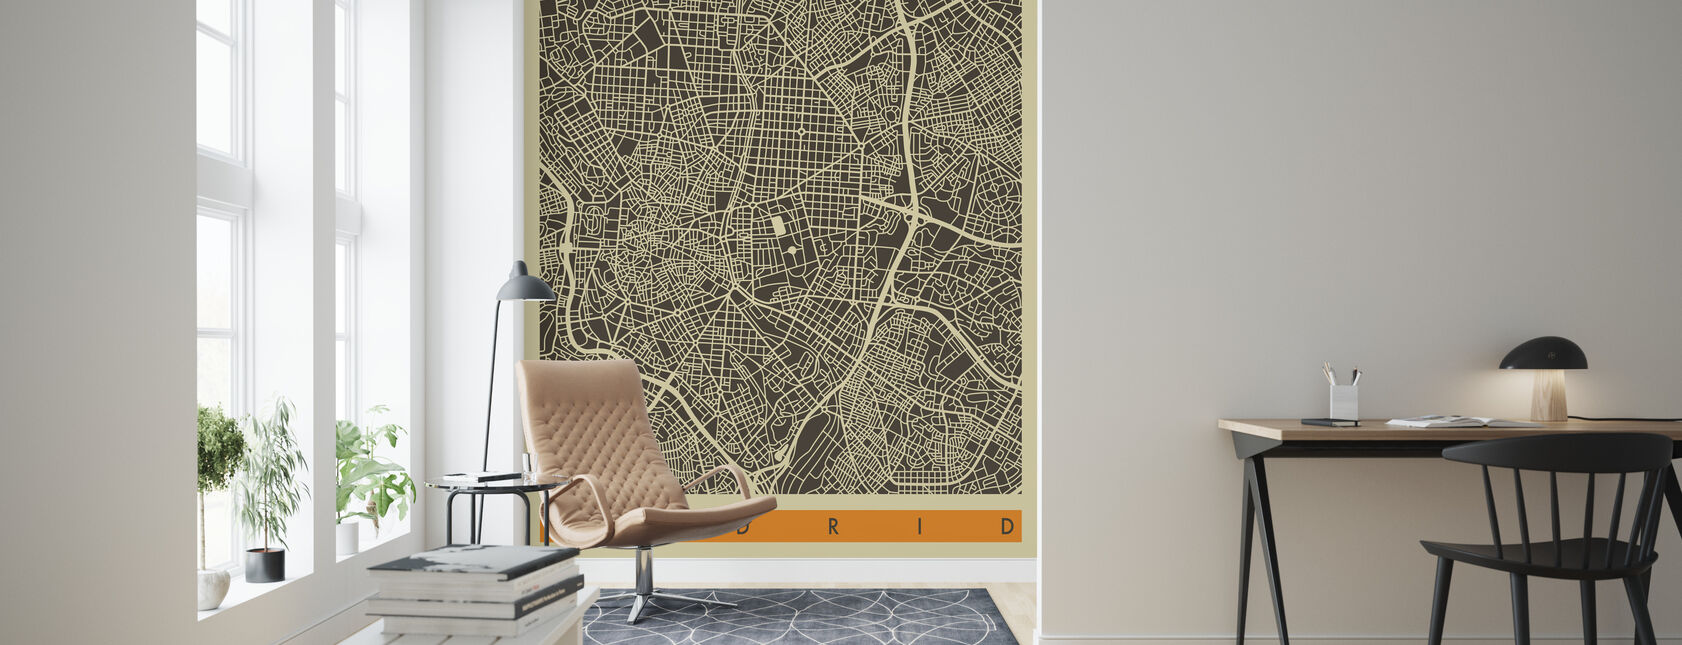 City Map - Madrid - Wallpaper - Living Room